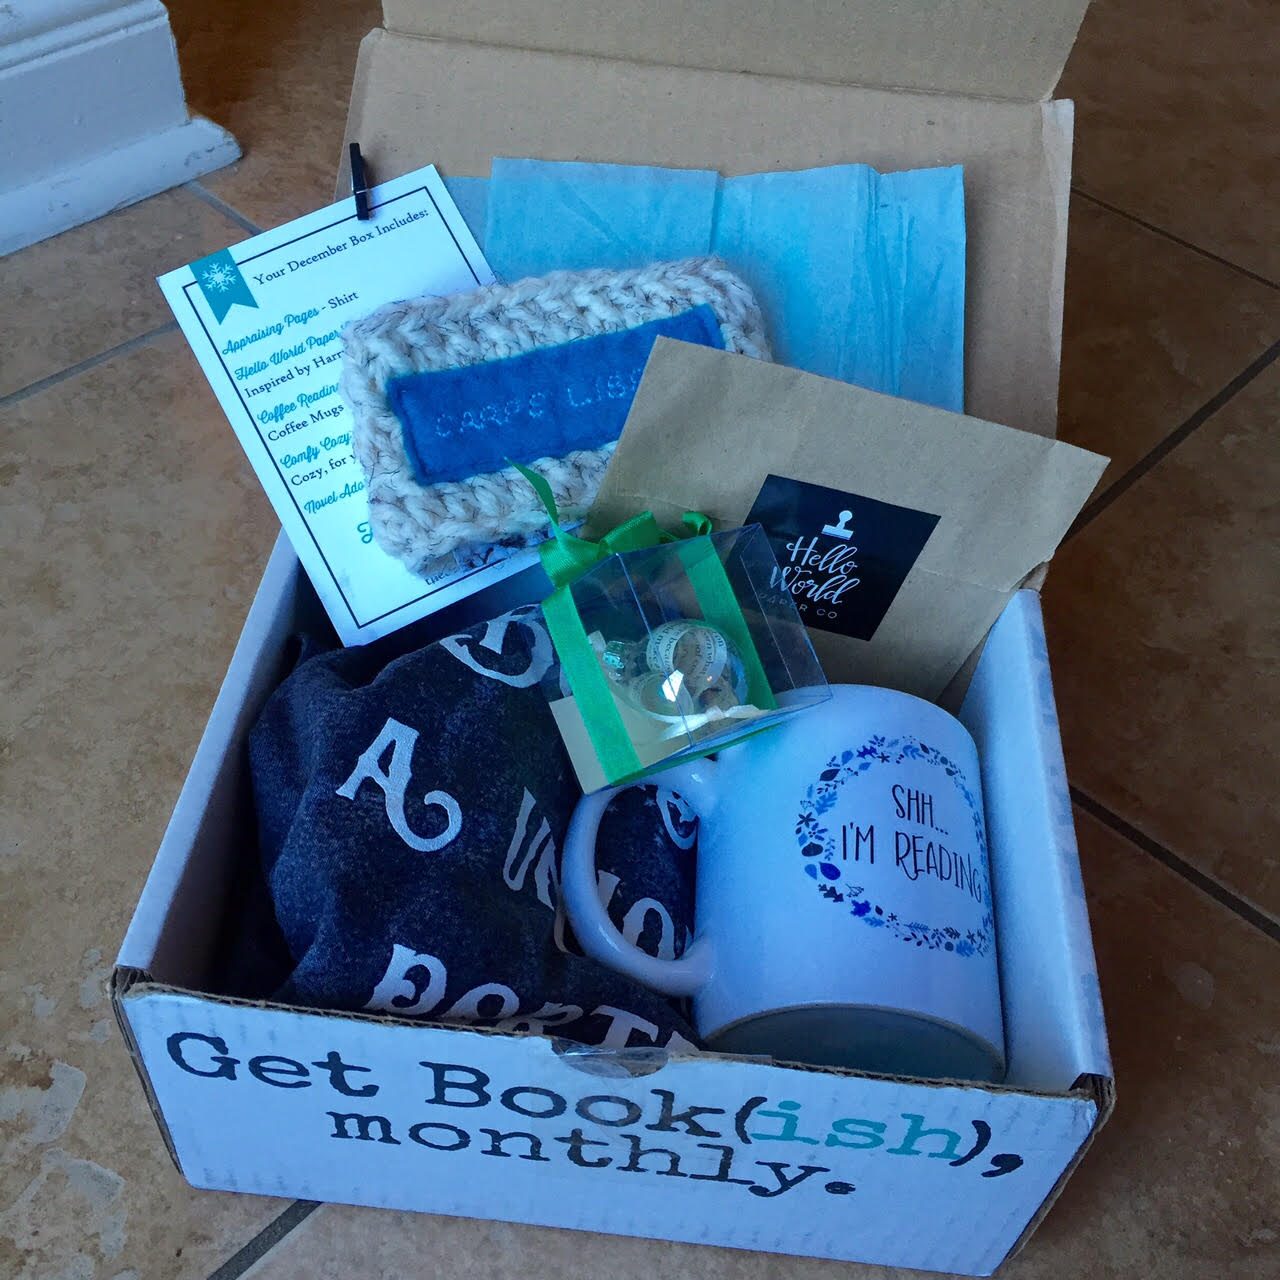 Start a subscription box service...